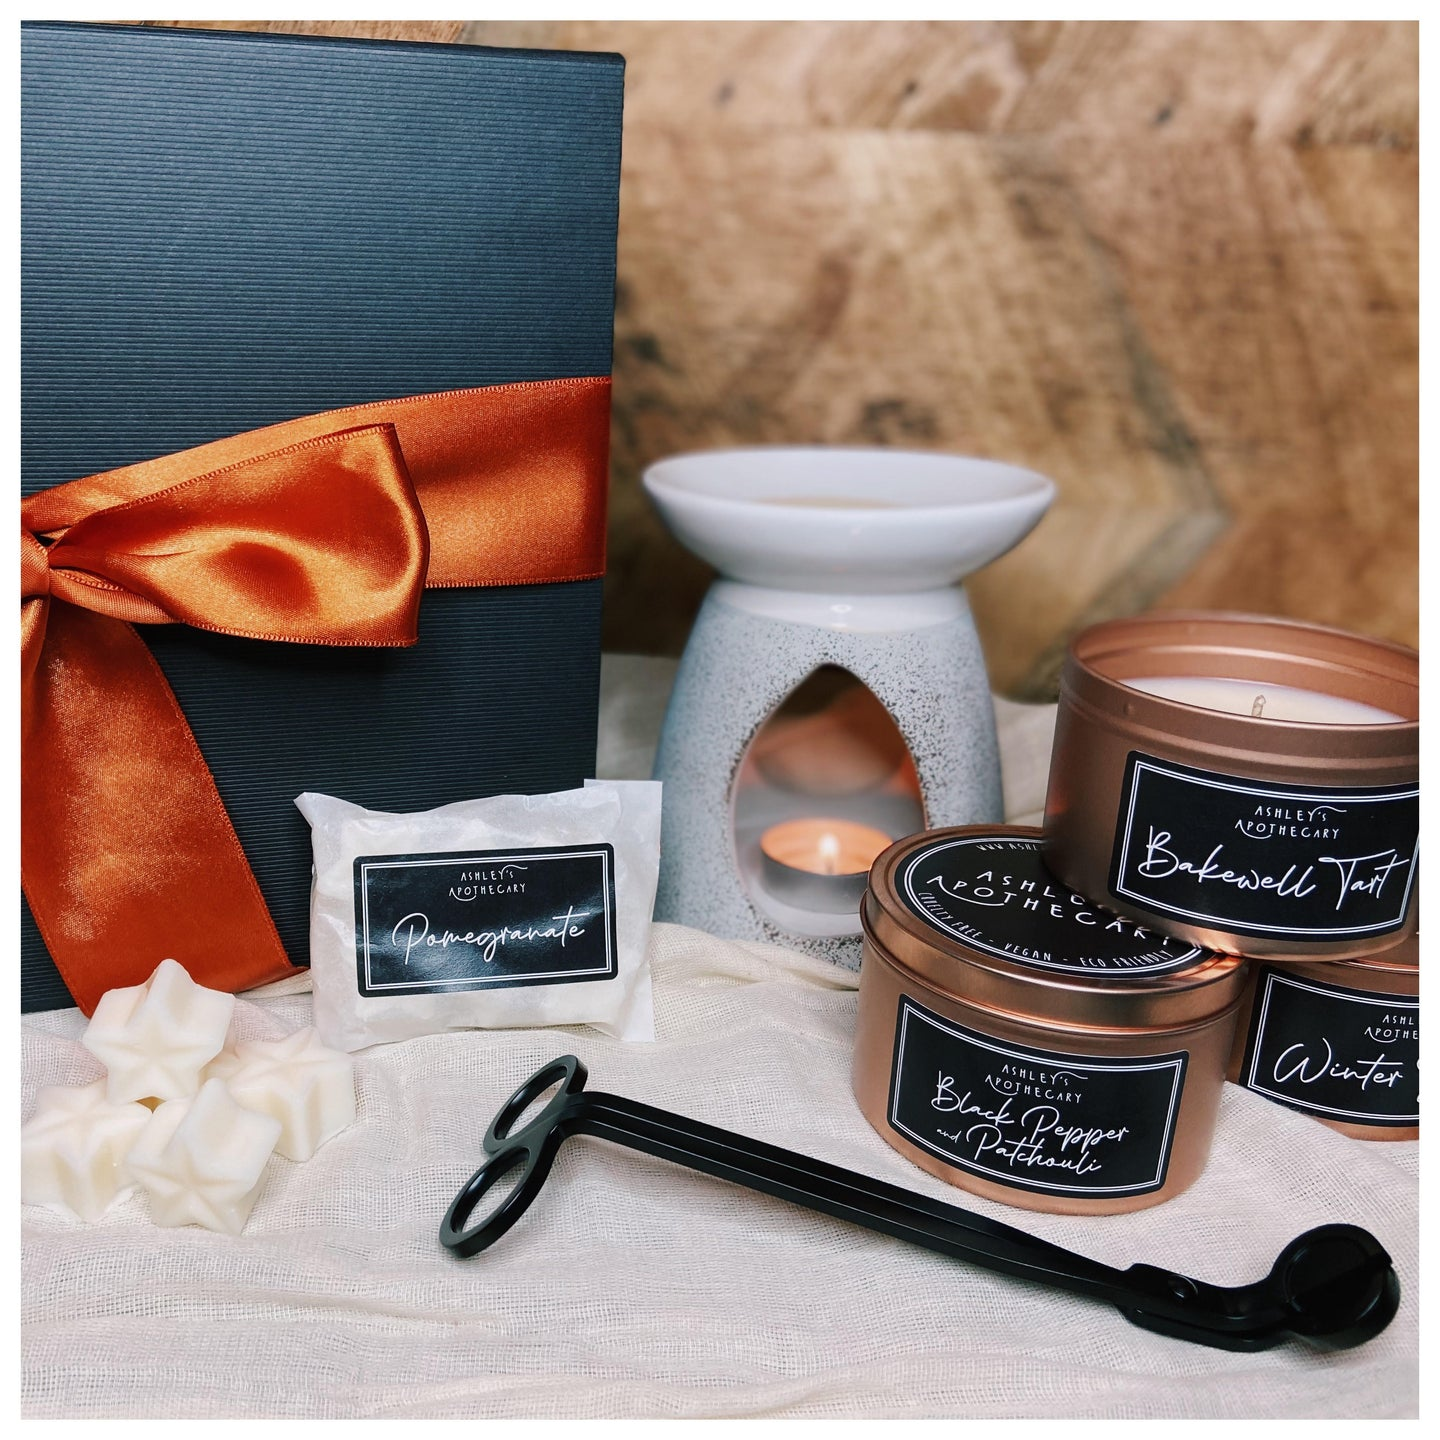 Ashley's Apothecary Gift Box - Option 3